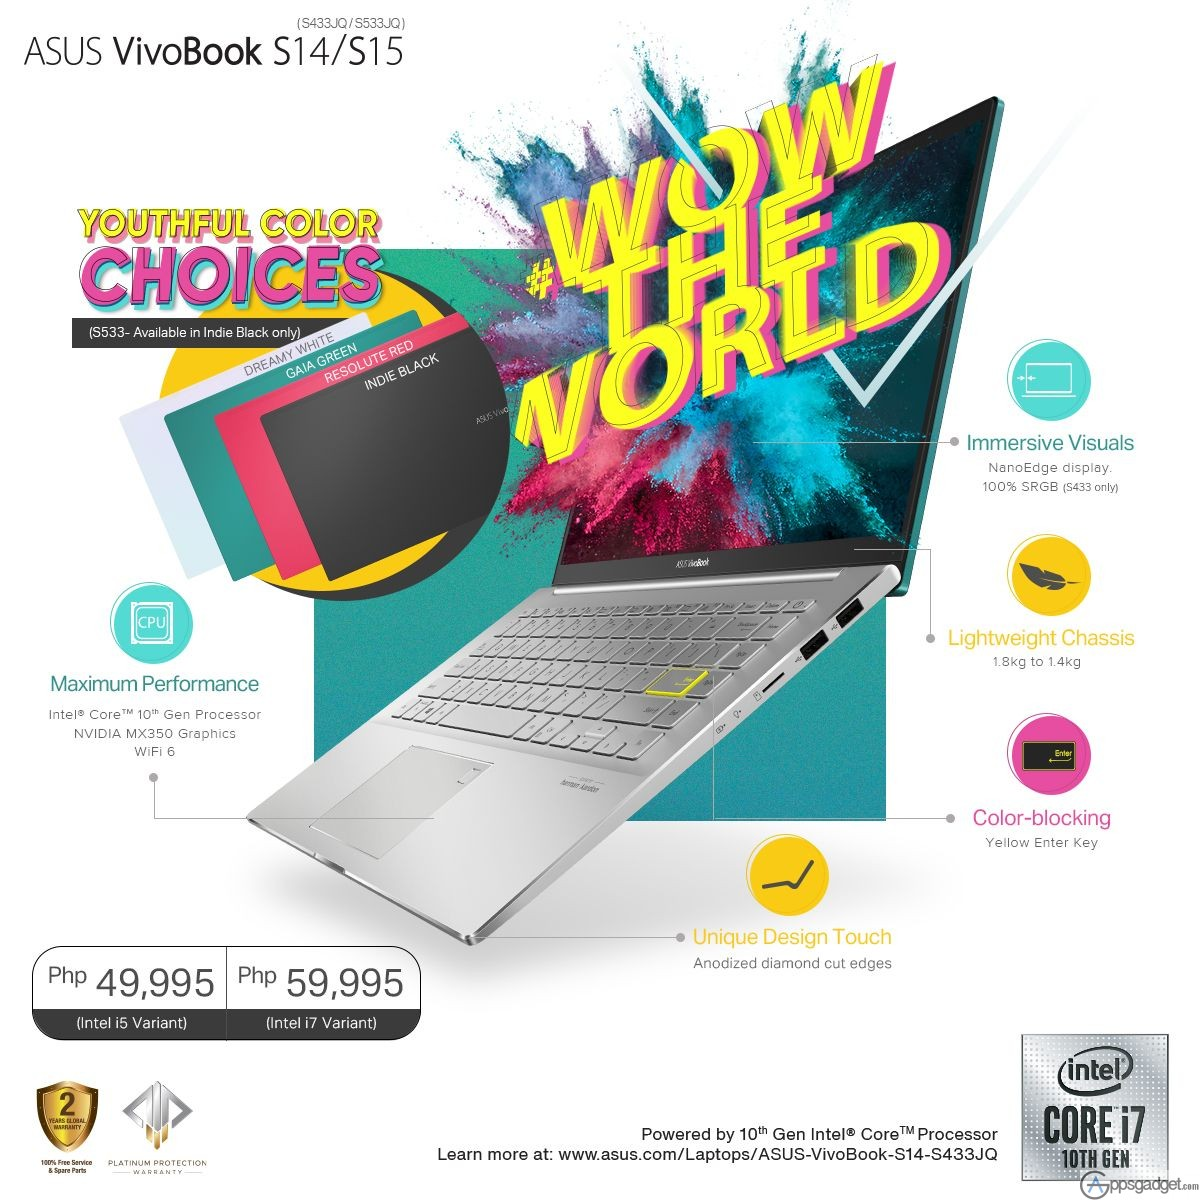 ASUS VivoBook S14 and S15 Launched